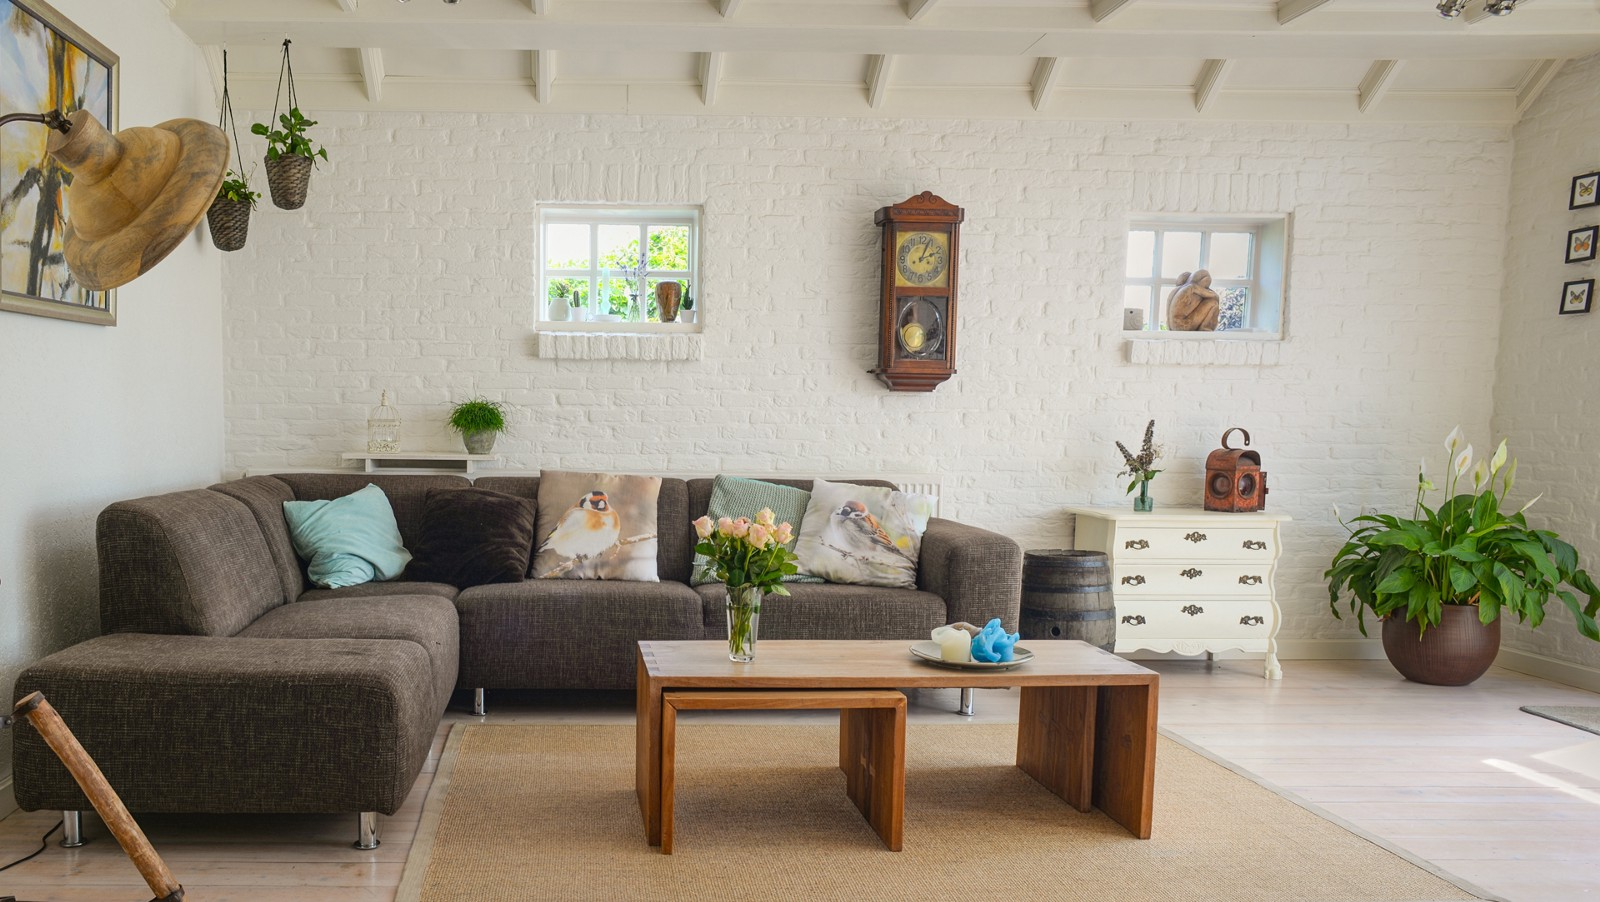 Best Interior Design Ideas On A Budget To Glam Up Your Home